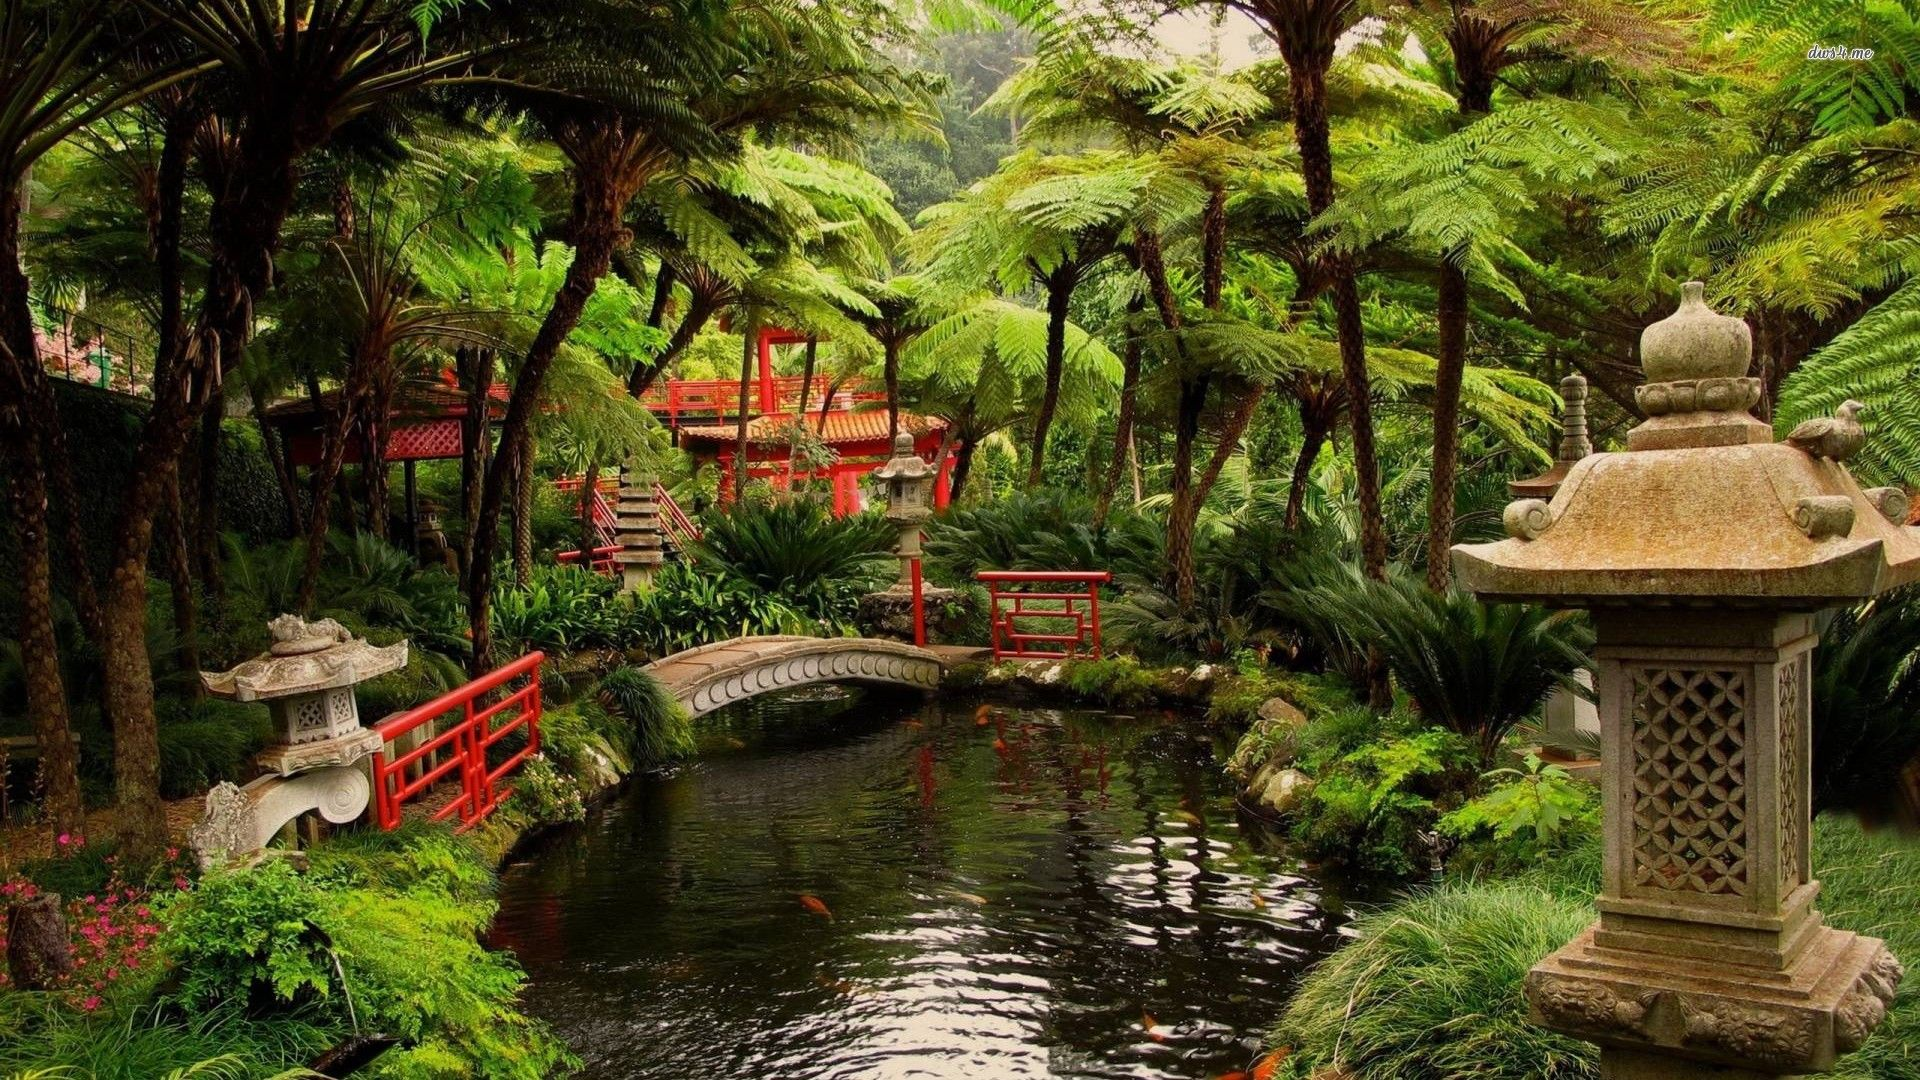 Other japanese garden bridge pond building trees world for Fish pond bridges